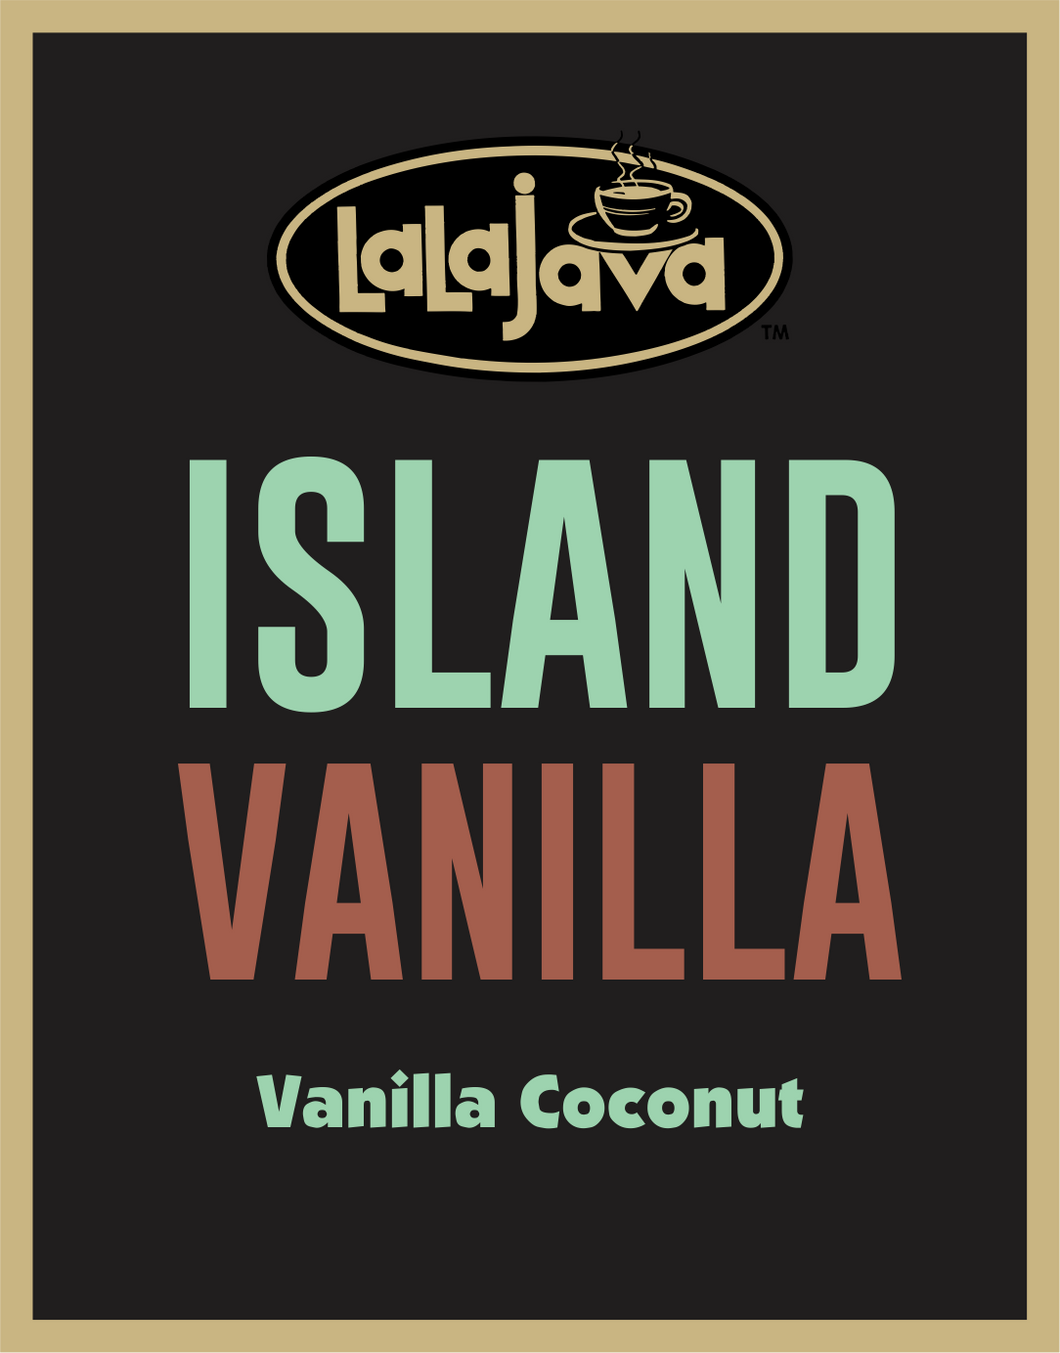 Coffee Island Vanilla